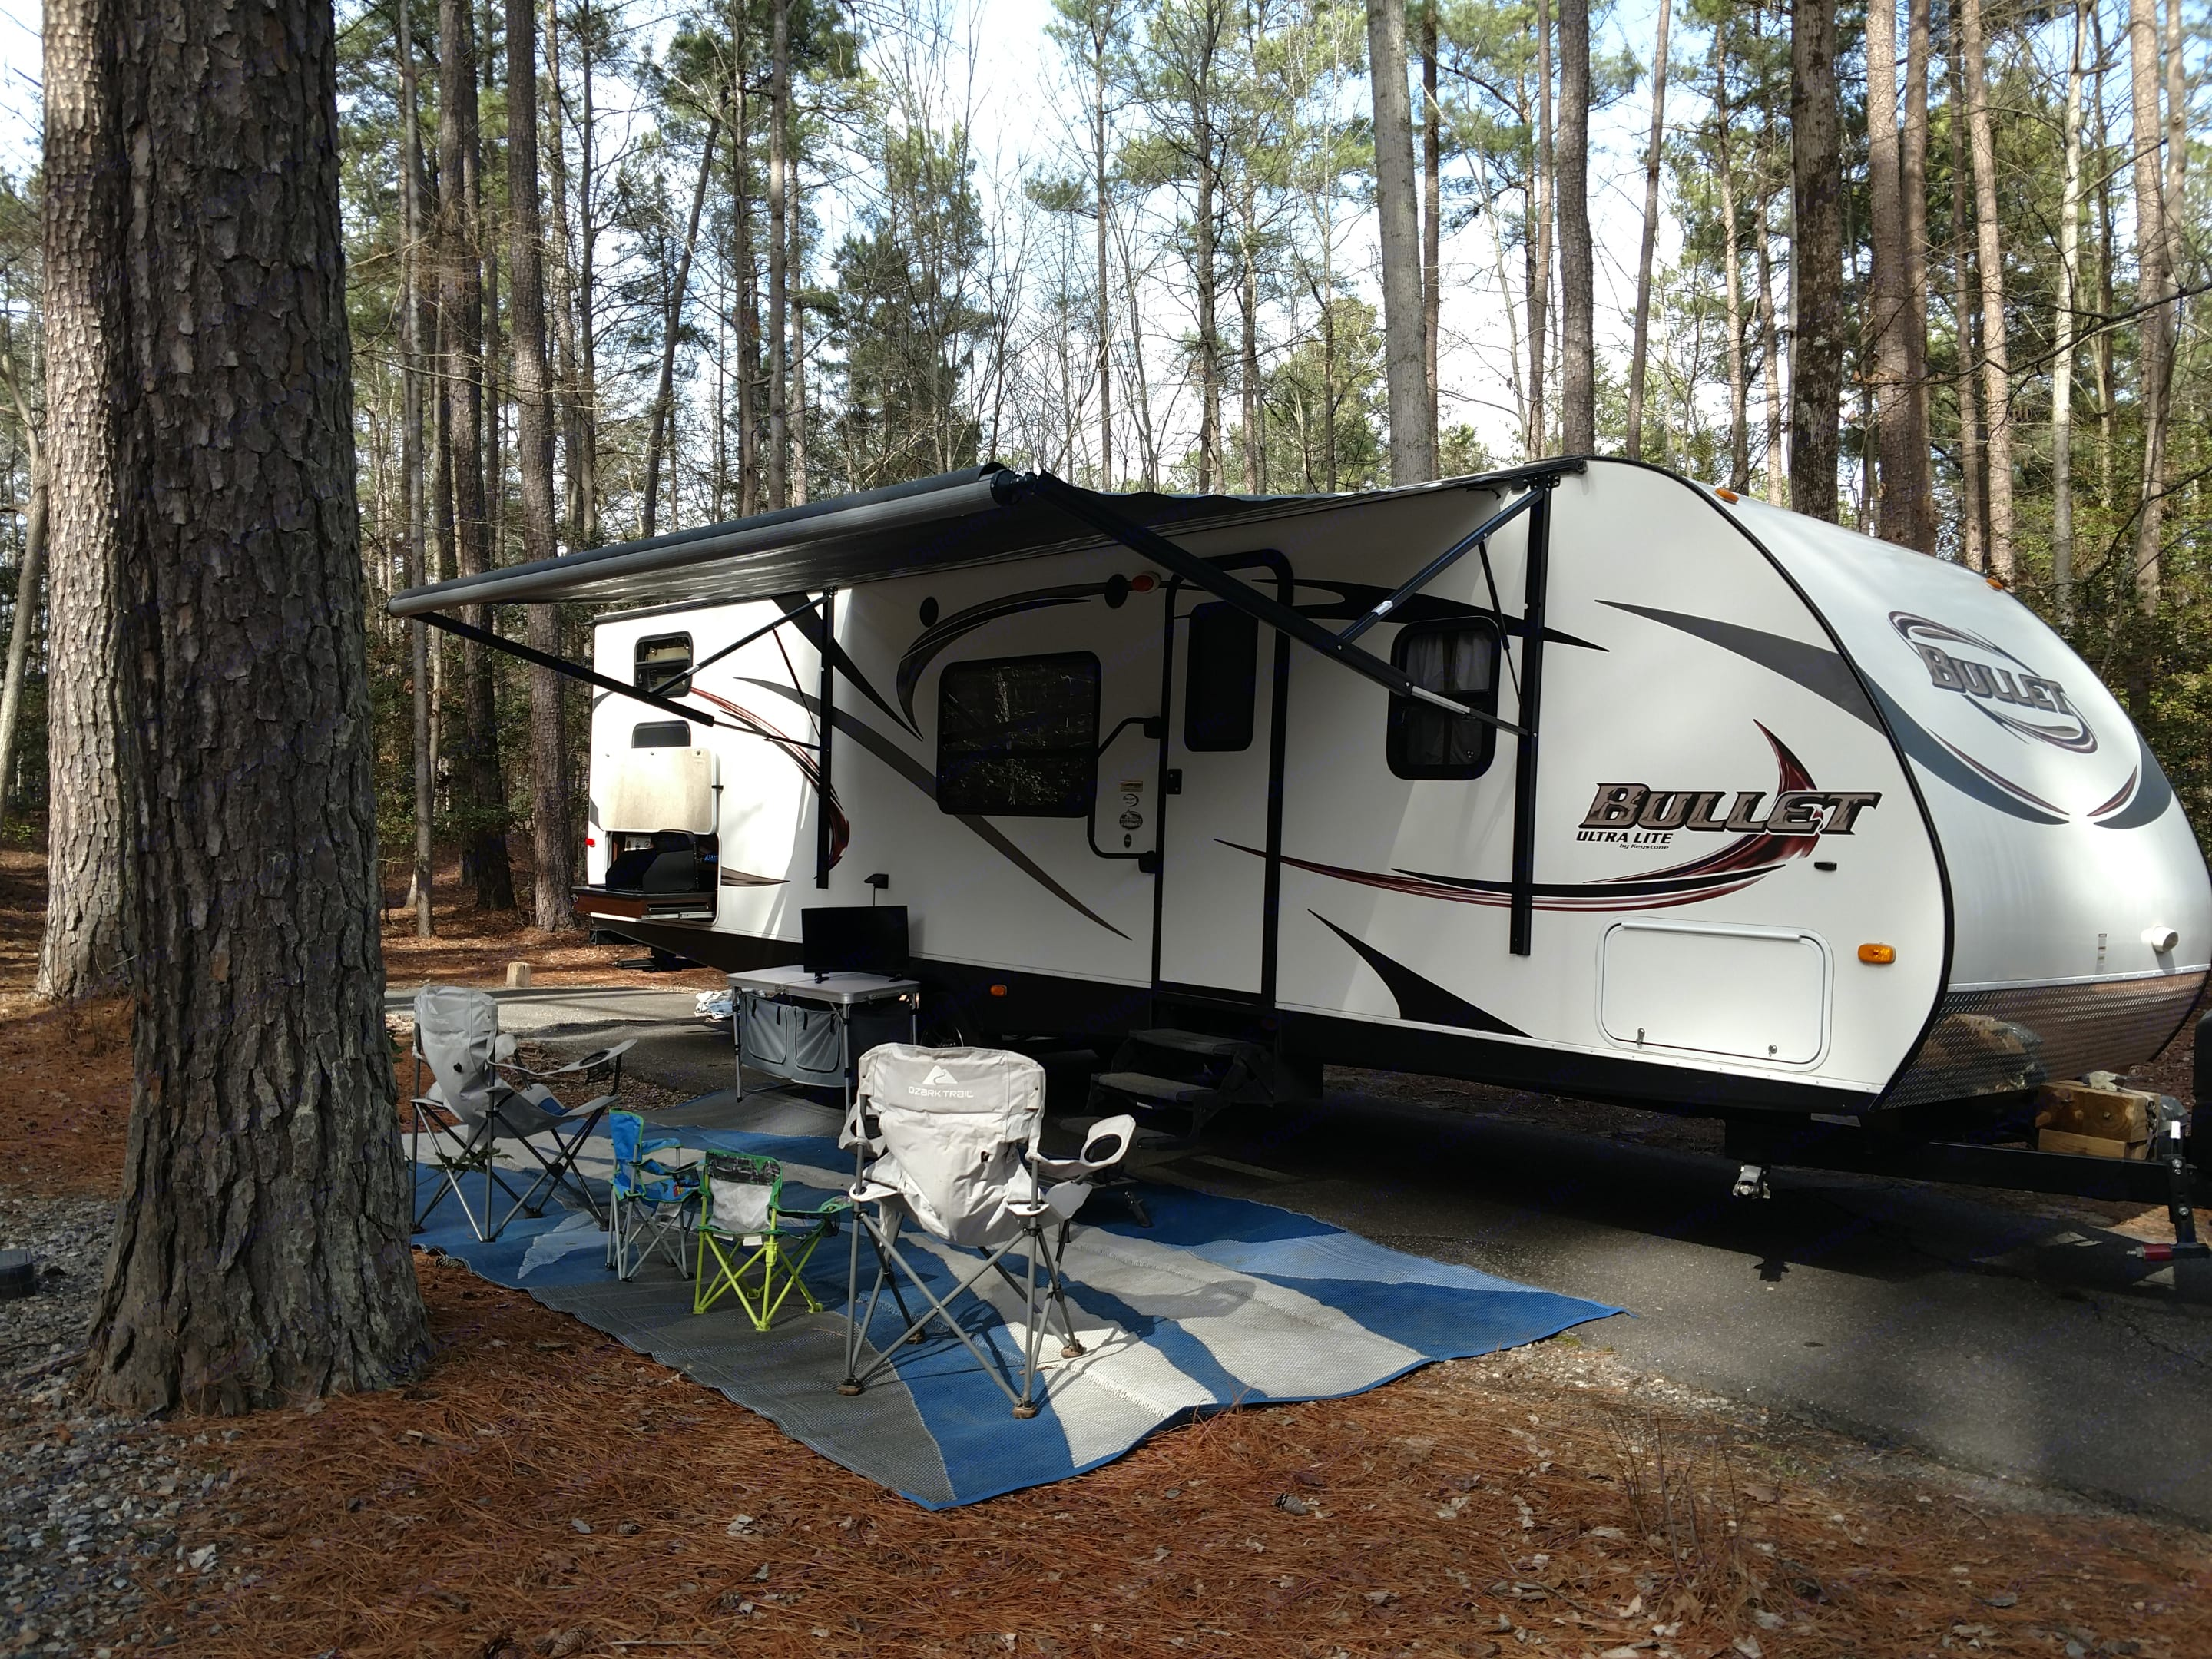 Perfect Family Camper, Will provide everything you need to camp and have a great time.  Outdoor Kitchen, Outdoor smart TV--Very well maintained camper. Keystone Bullet 2013